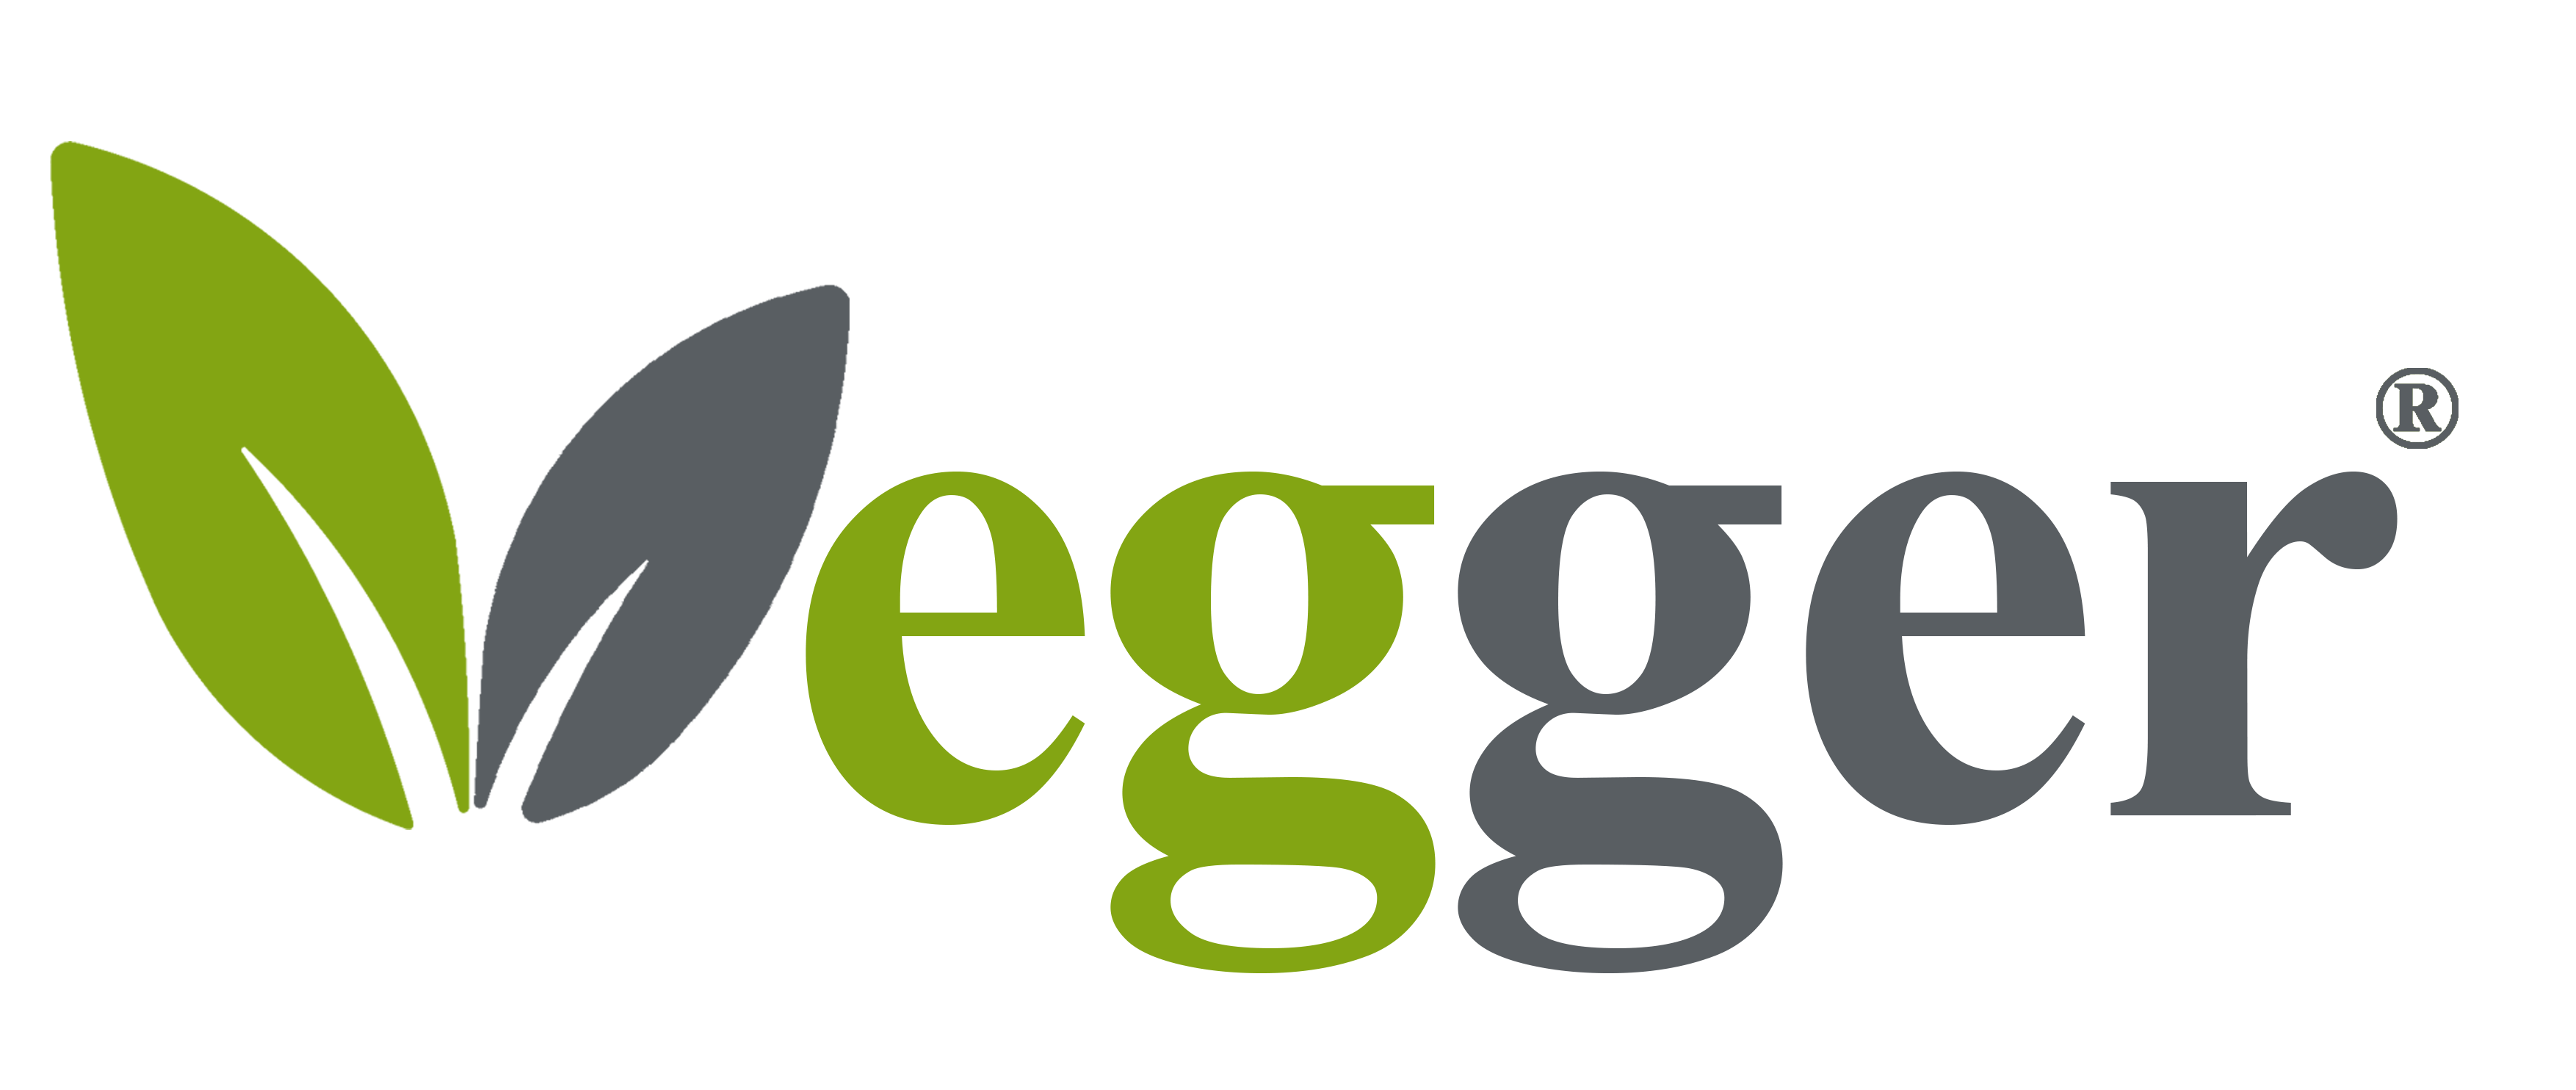 Vegger | Indoor Gardens & Vertical Farms